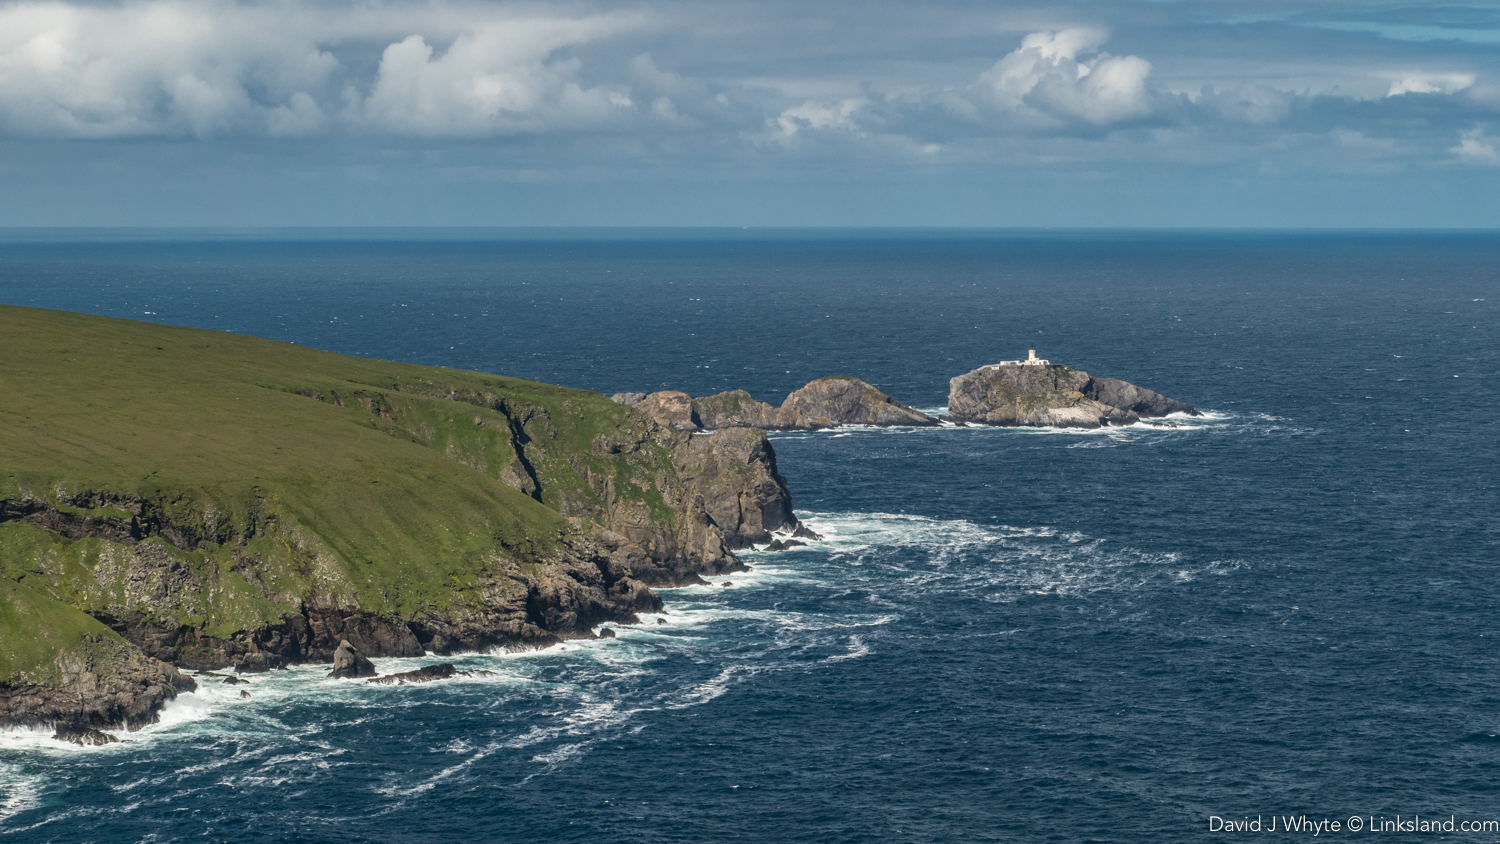 Muckle Flugga, the last outpost of the great British Isles